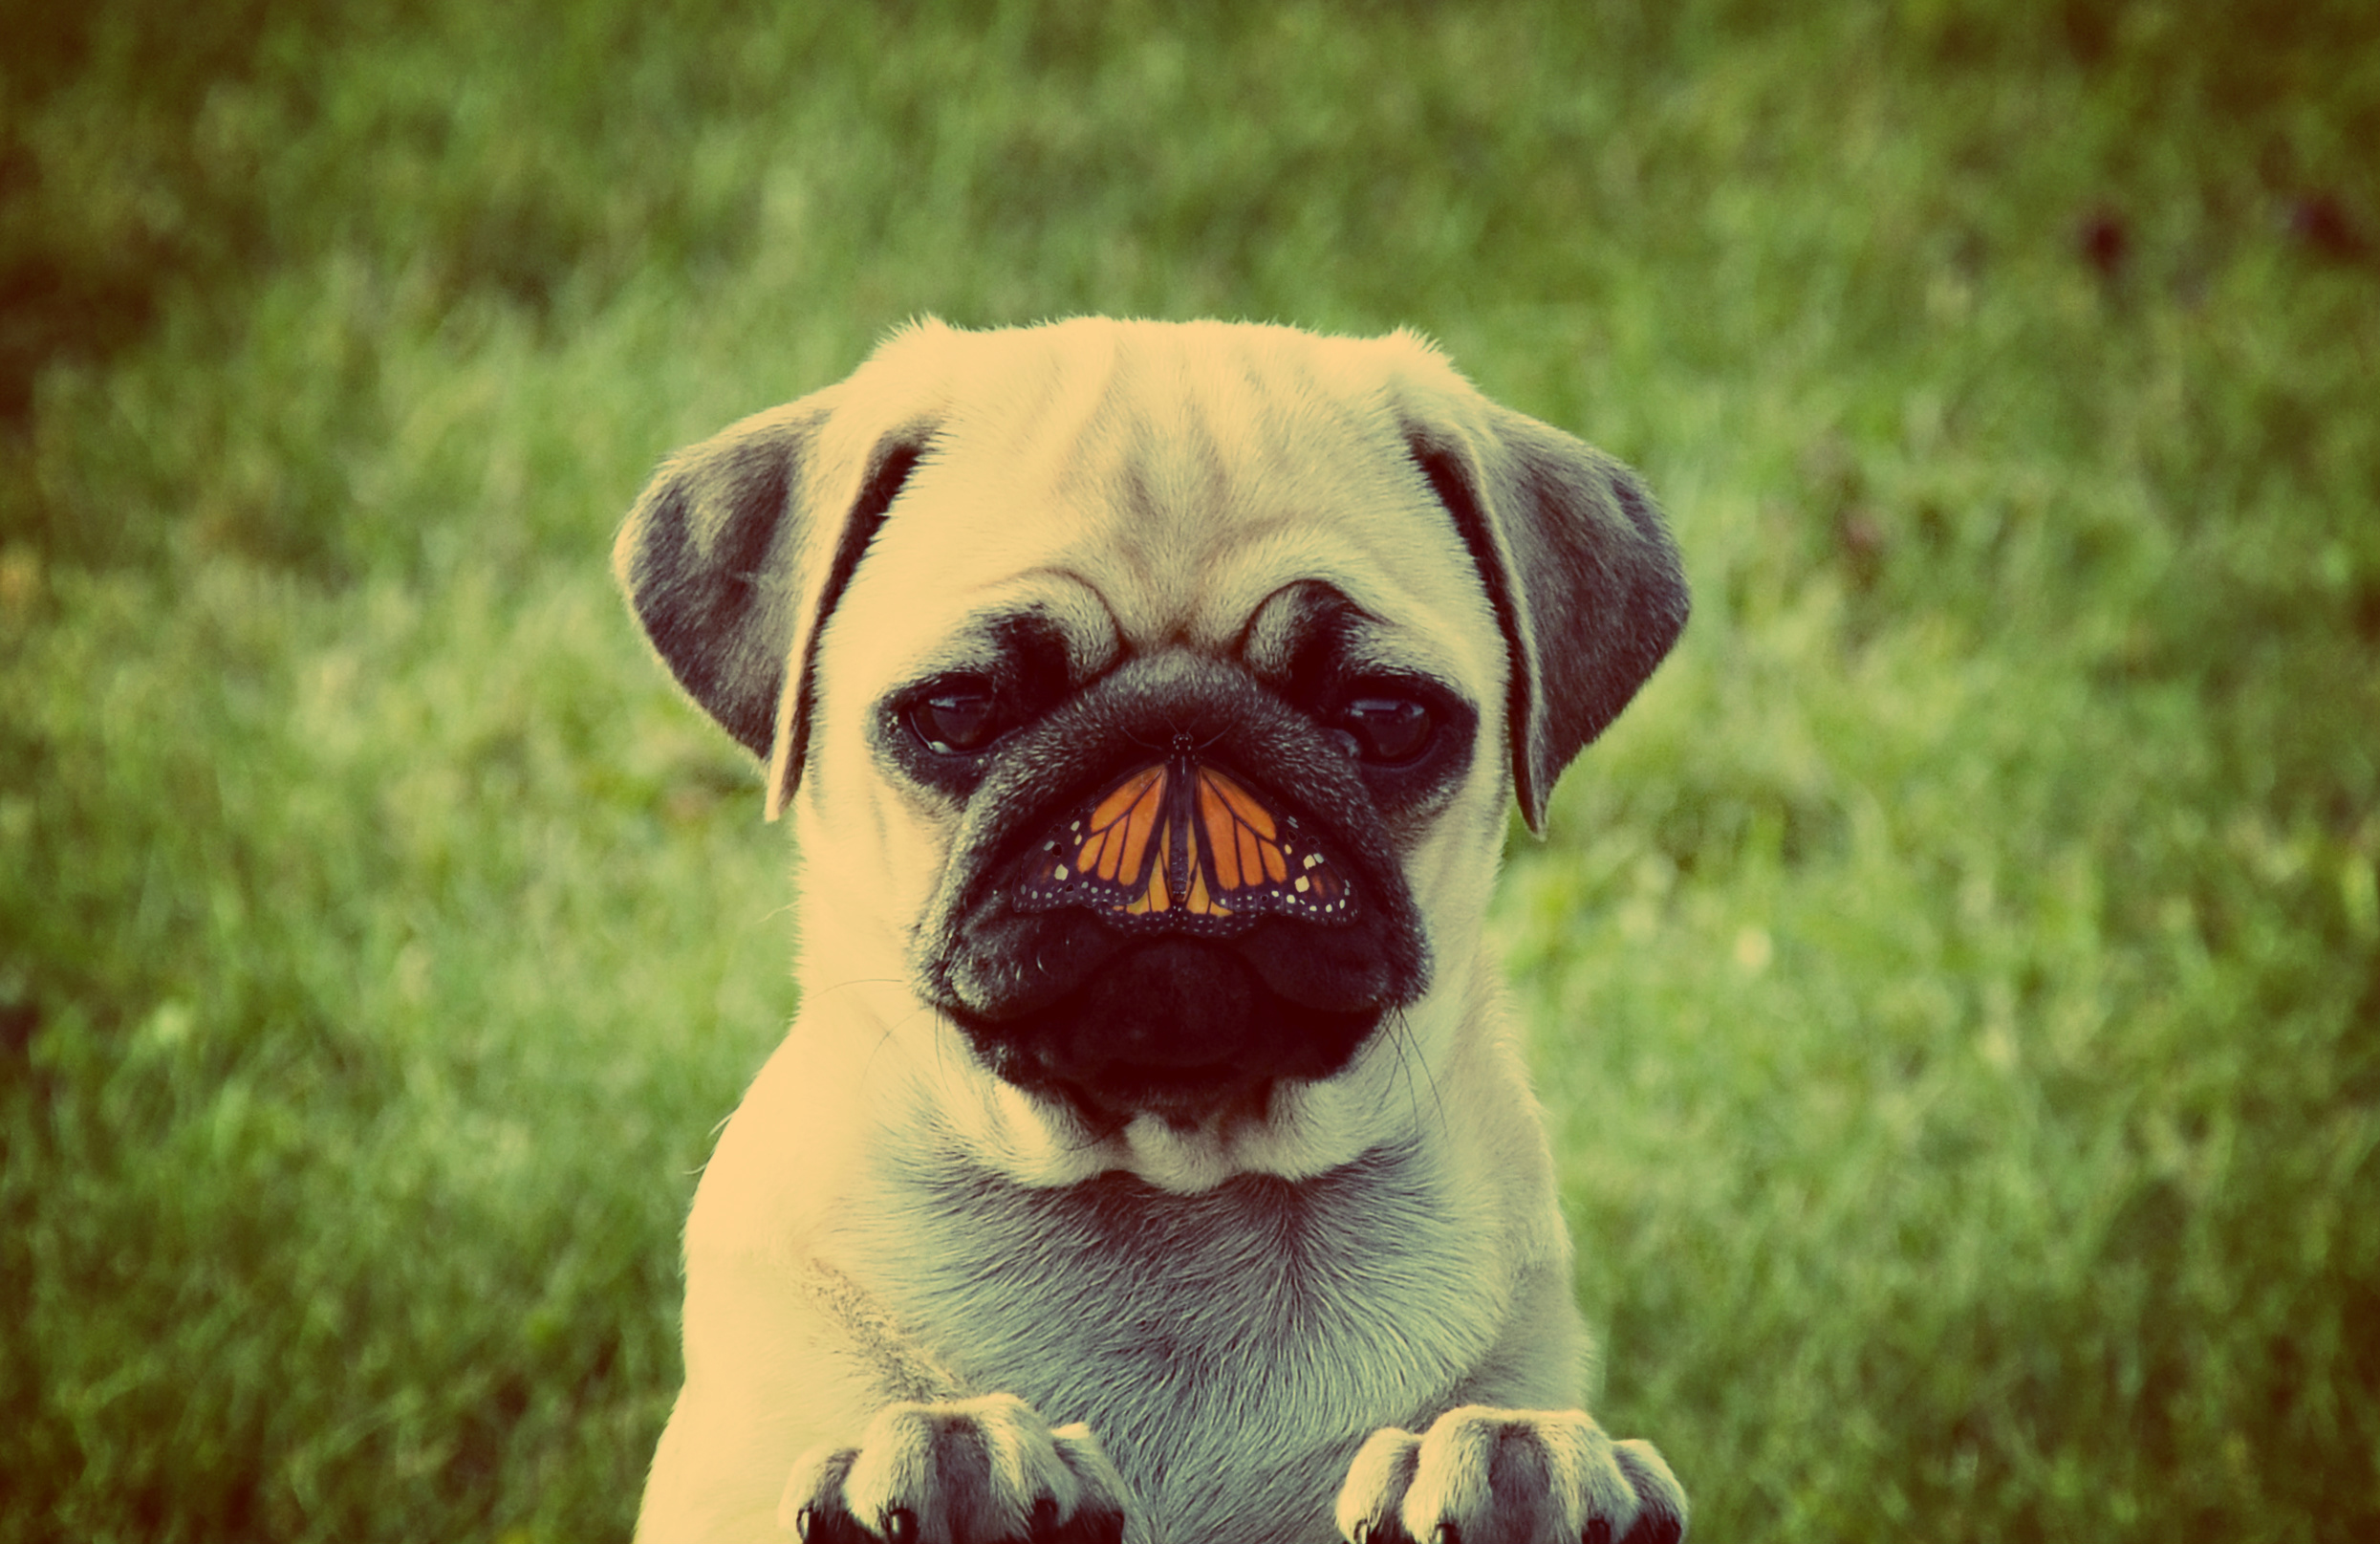 Dog and butterfly - unlikely friends concept photo